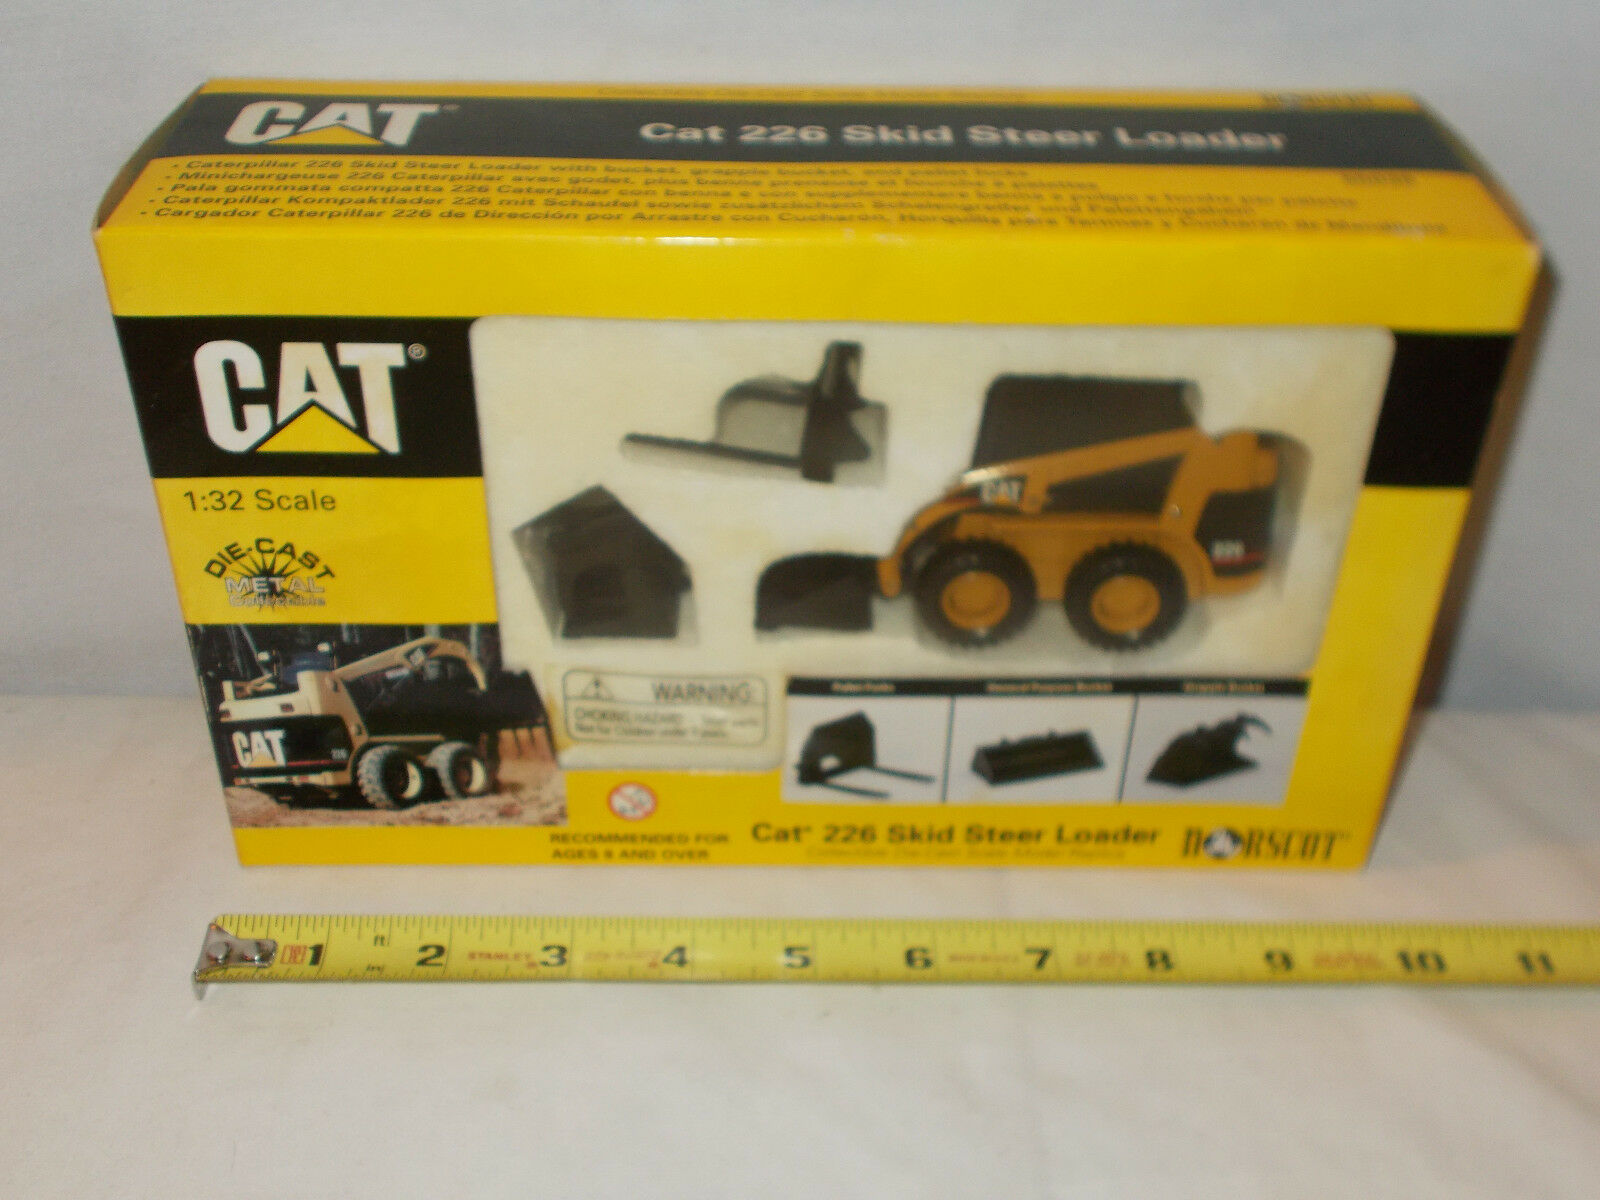 Caterpillar 226 Skid Loader With Work Tools By Norscot Norscot Norscot 1 32nd Scale cfc7a6